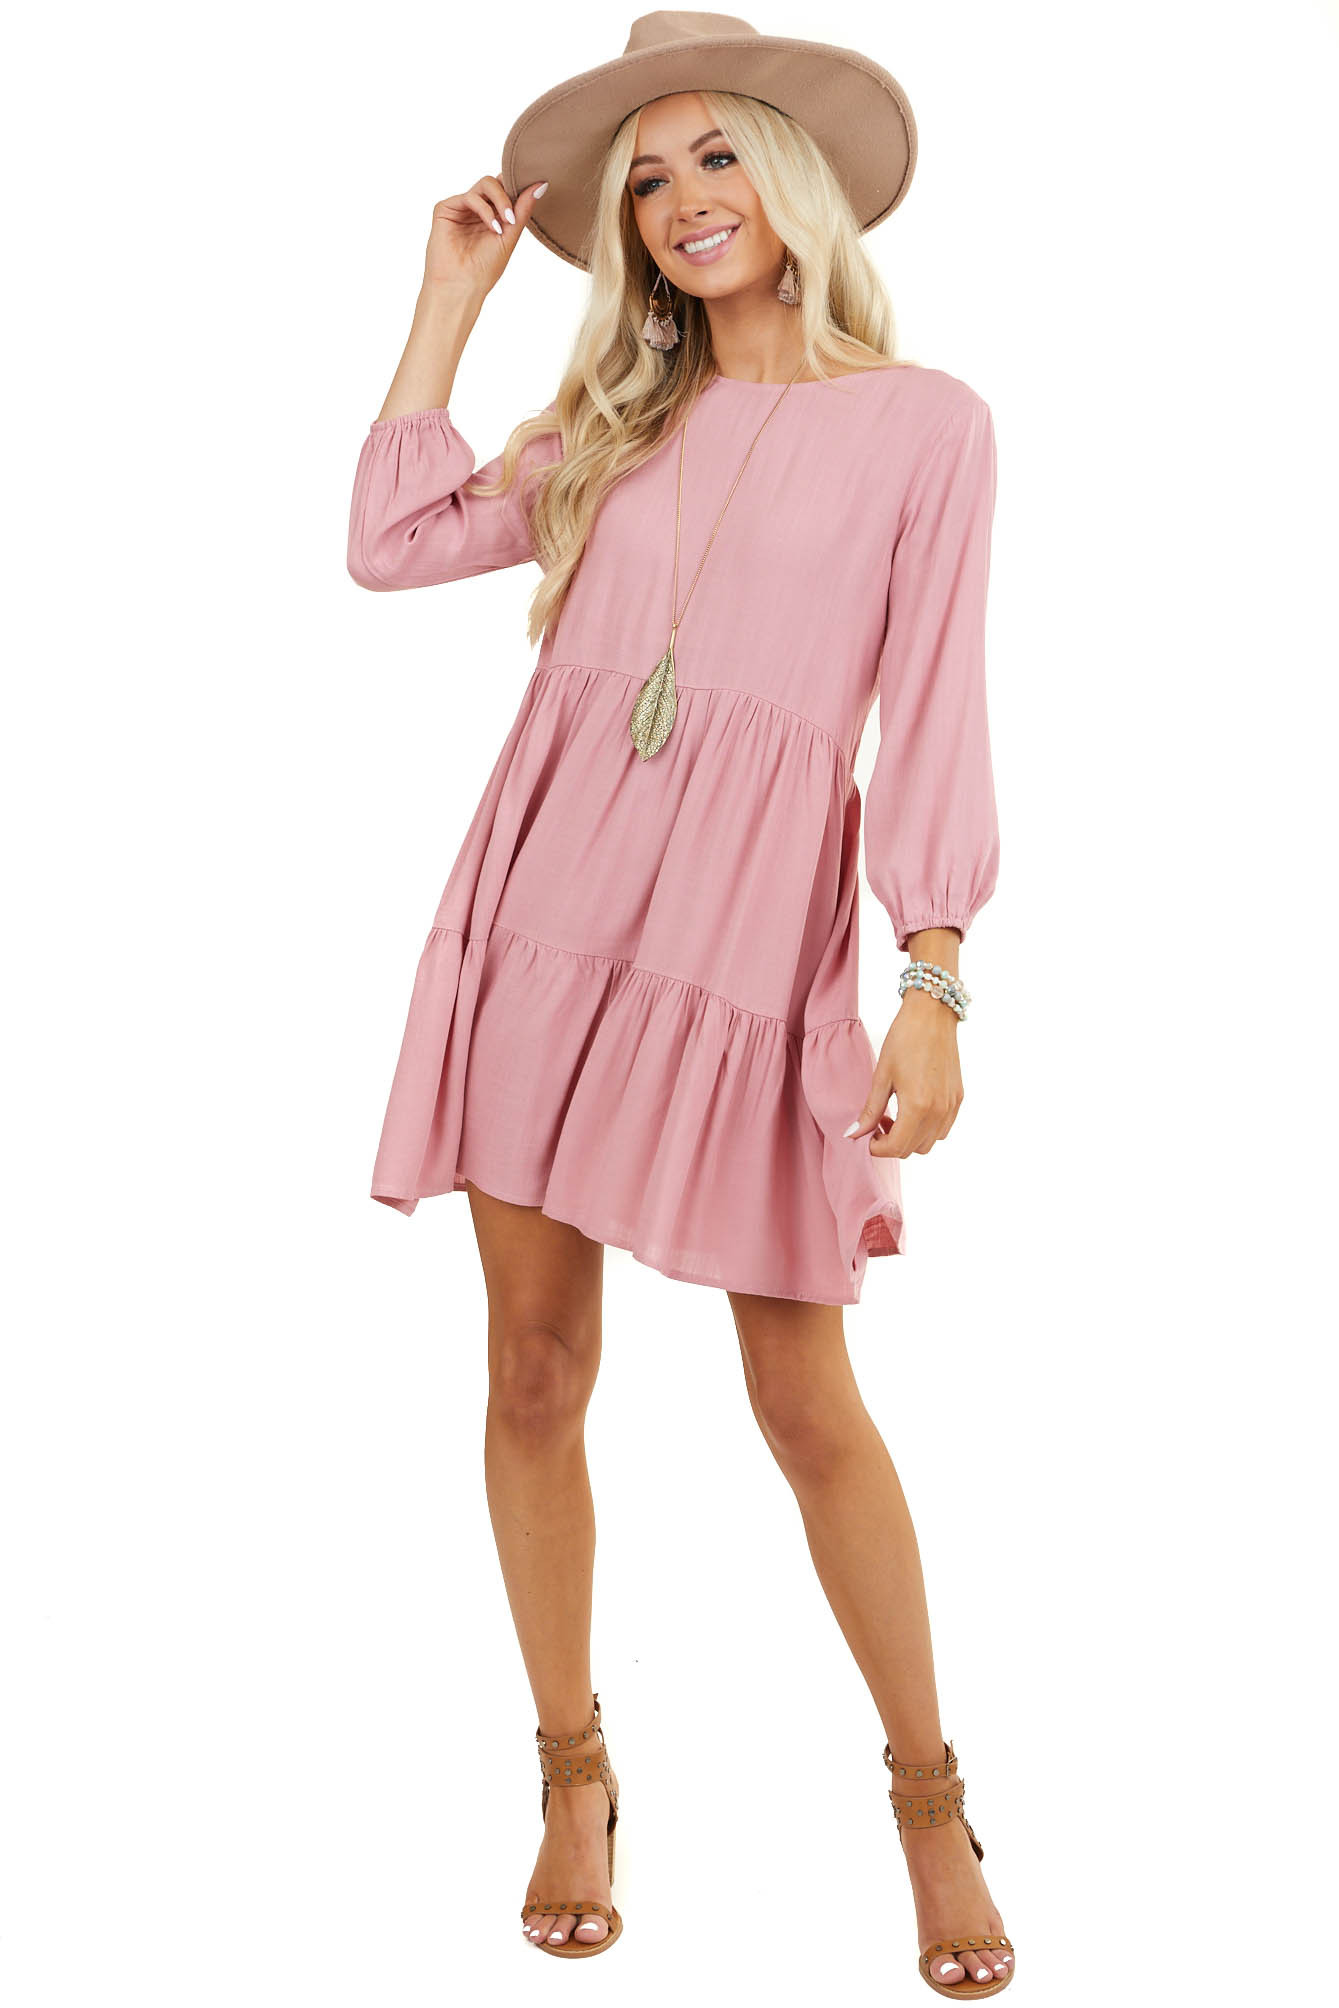 Dusty Pink Tiered Woven Dress with 3/4 Length Bubble Sleeves